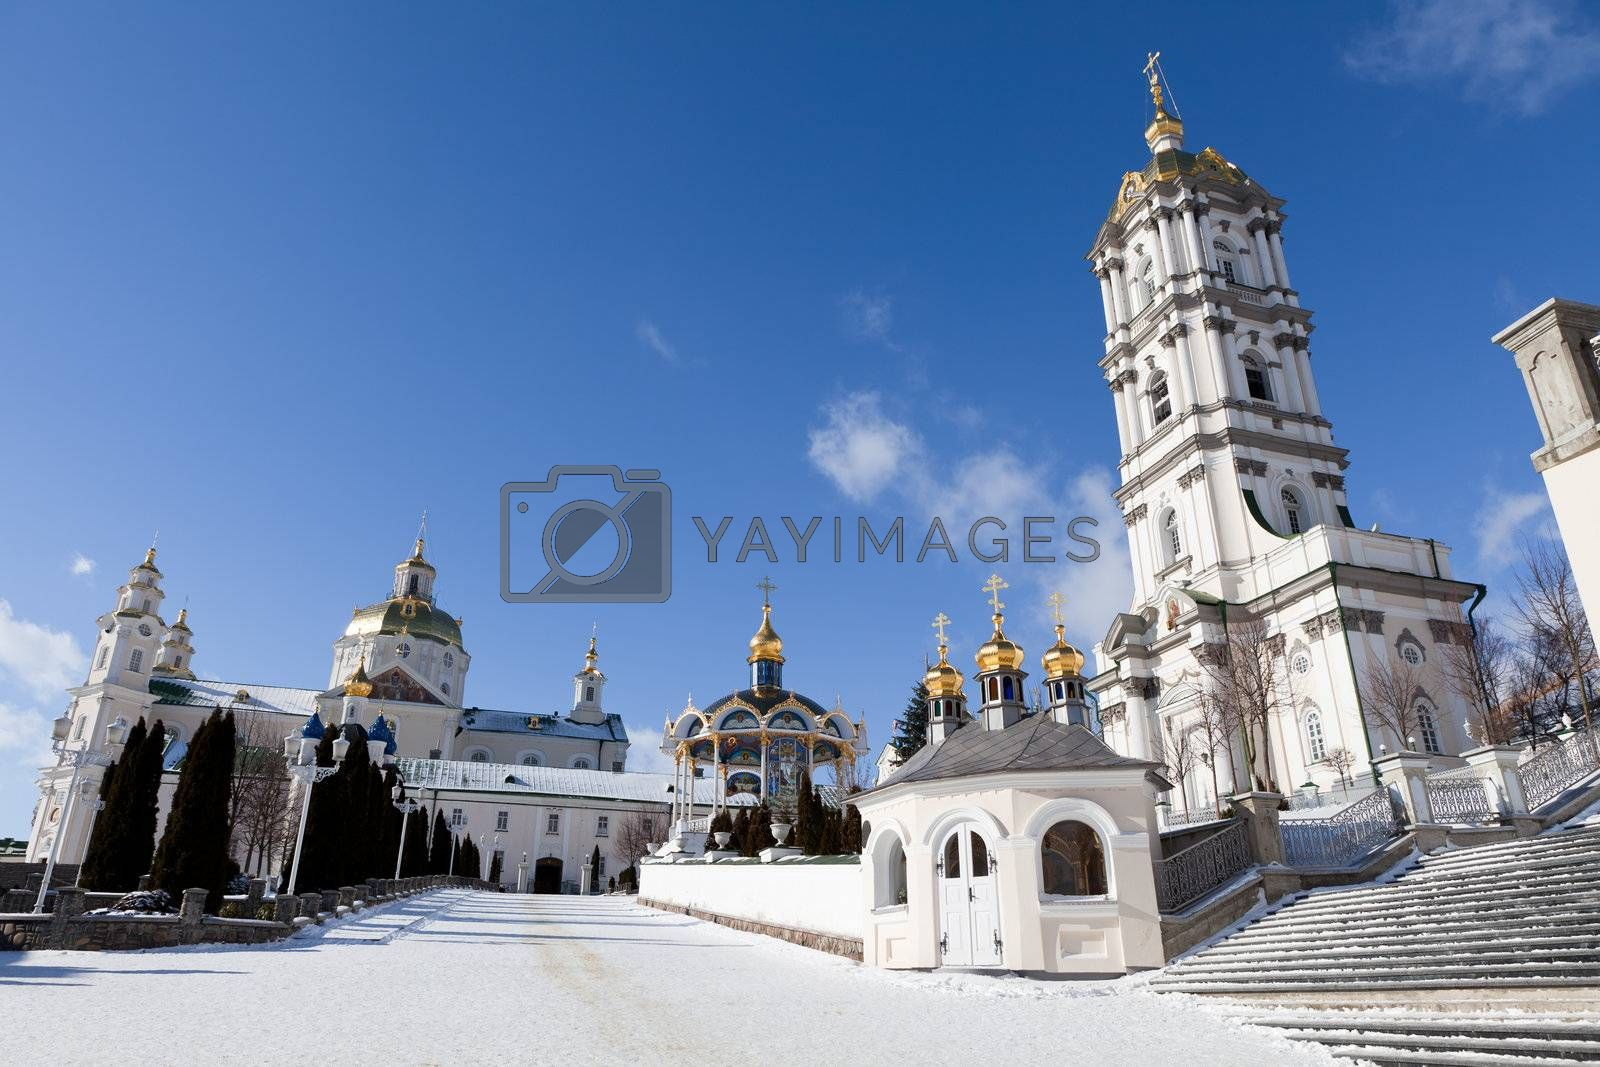 Belfry, dome and church of ancient sacred Christian Pochaev Monastery of Holy Dormition on blue sky background. Western Ukraine, Ternopol region, 16th century